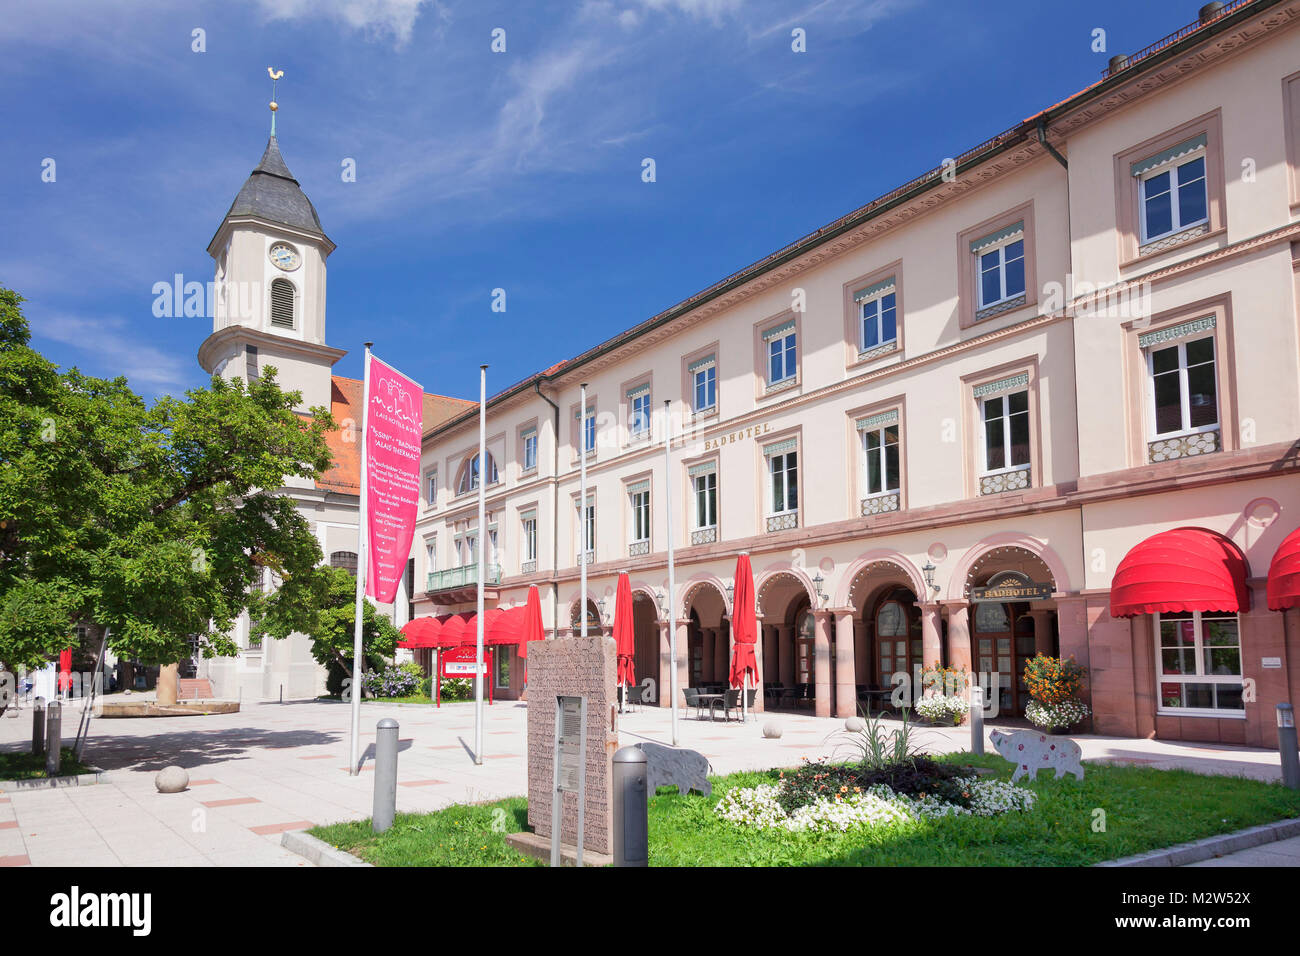 church village germany flower stock photos church village germany flower stock images alamy. Black Bedroom Furniture Sets. Home Design Ideas